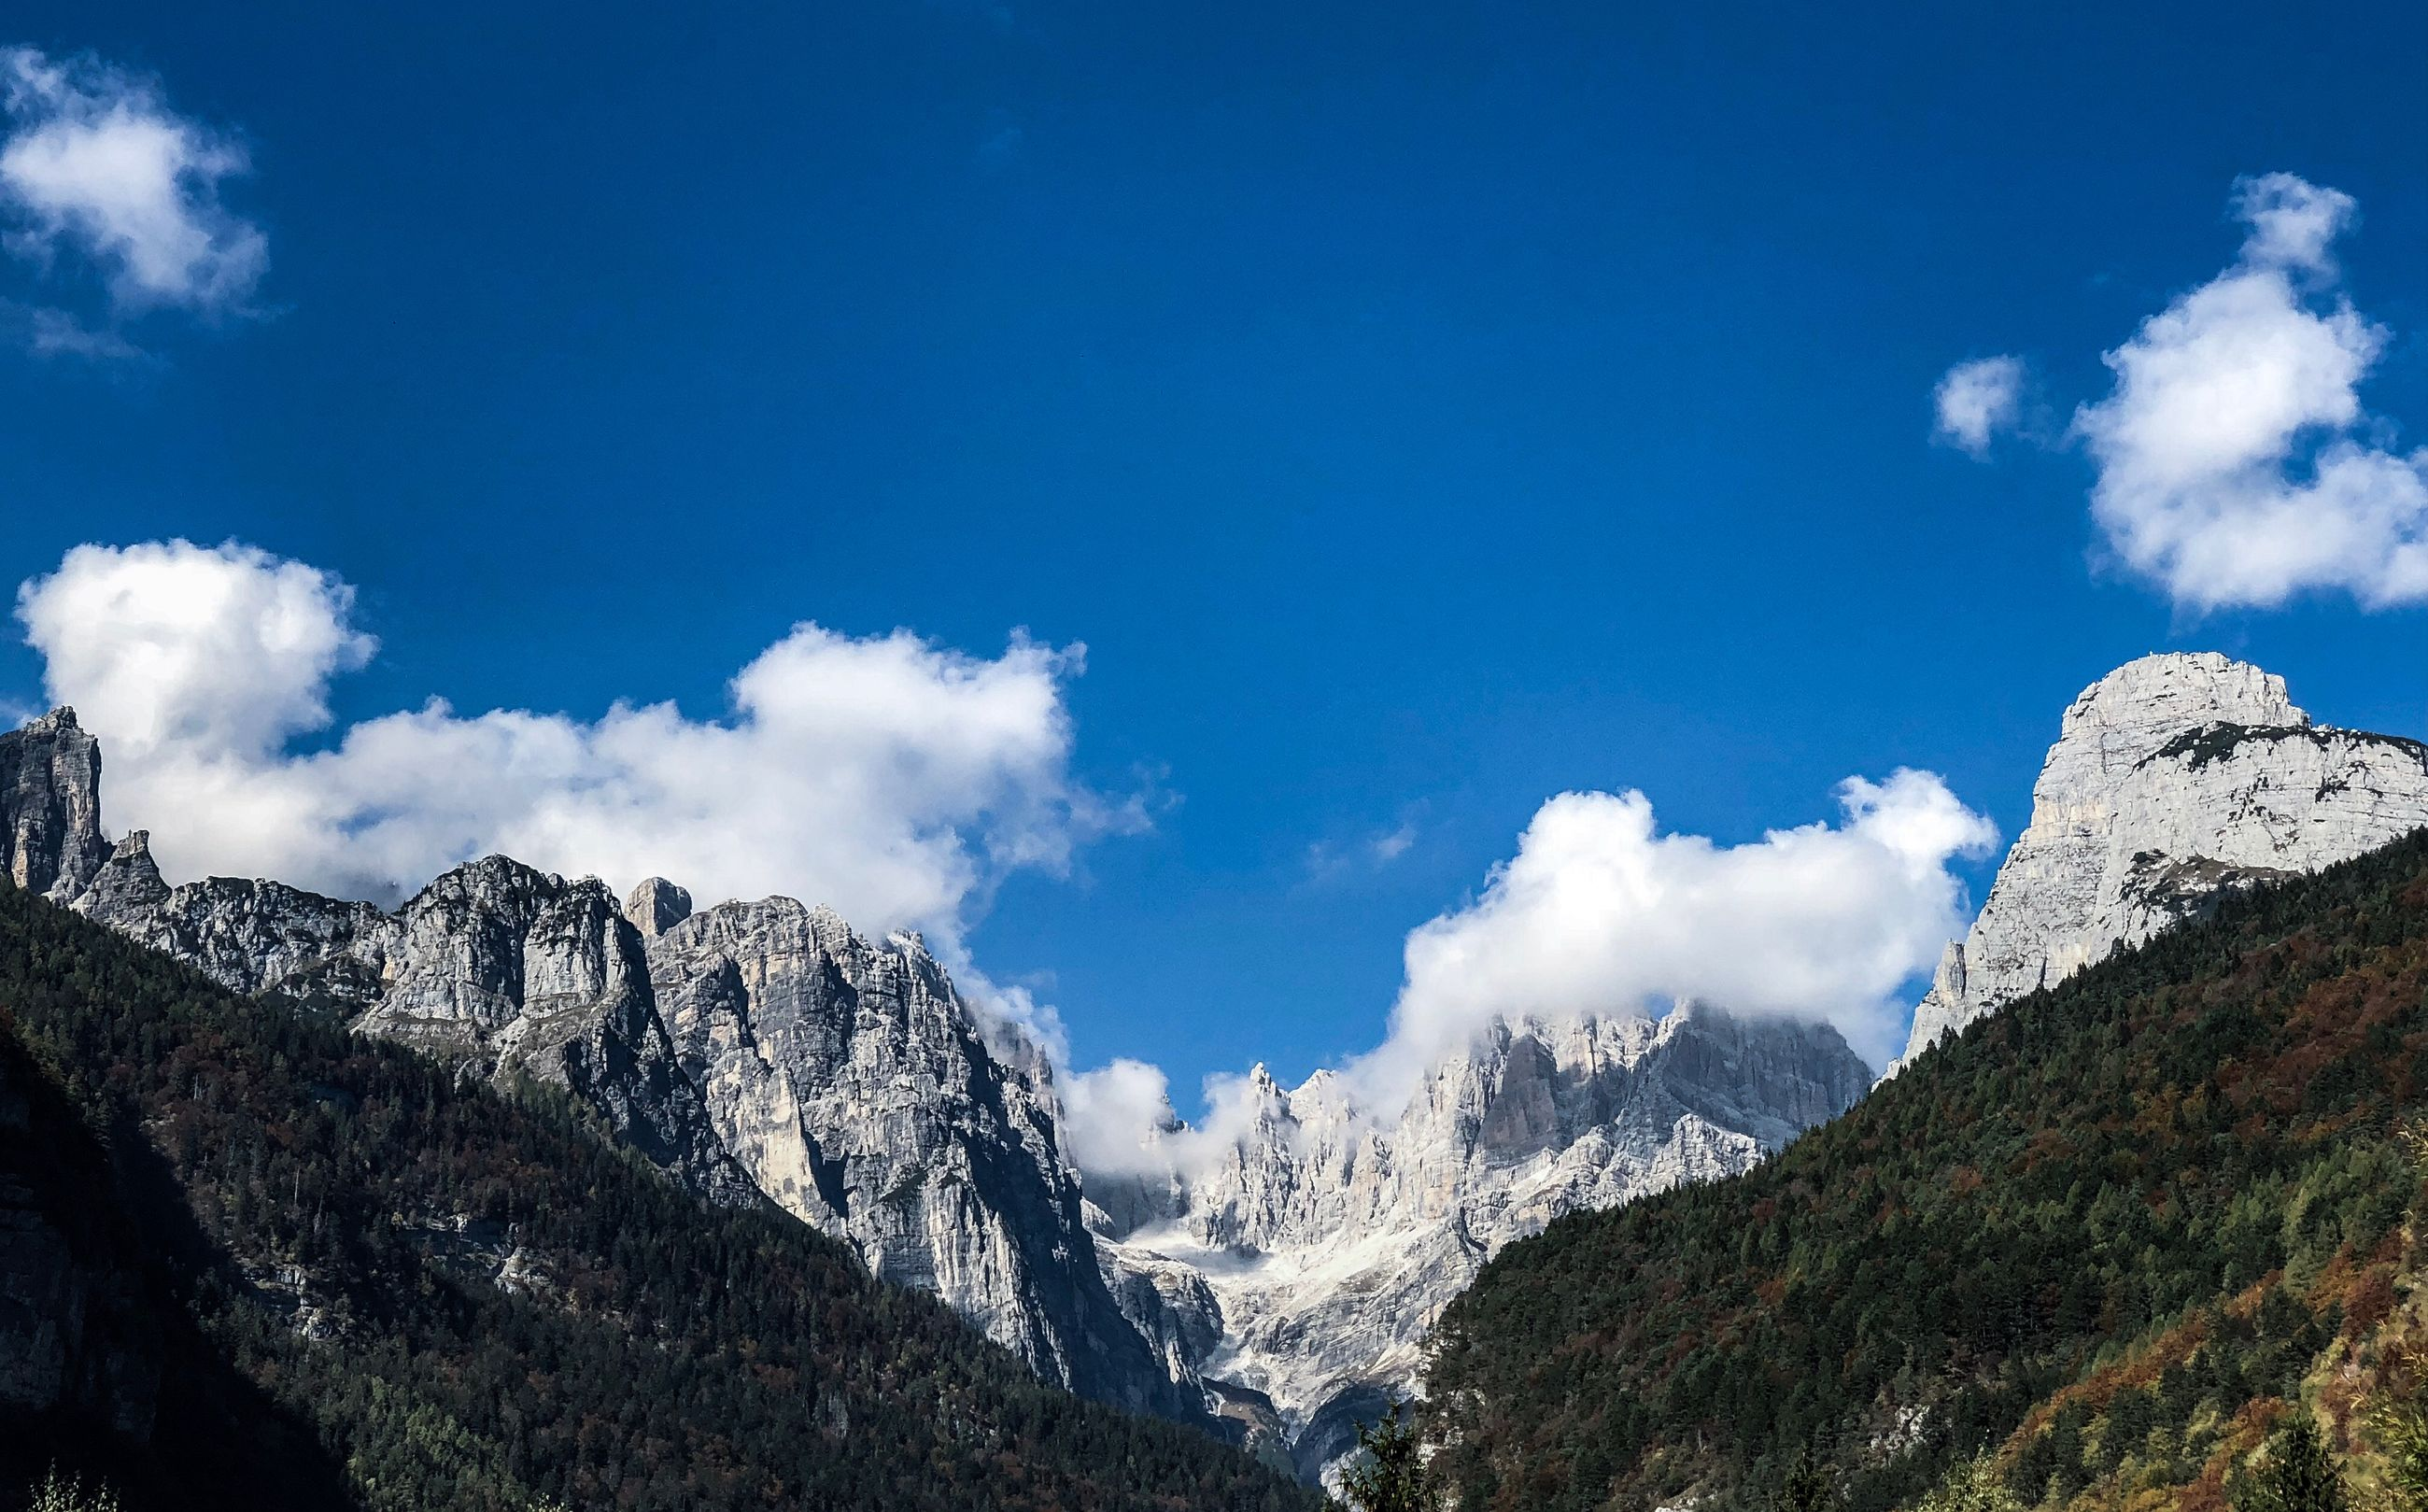 LOW ANGLE VIEW OF PANORAMIC SHOT OF MOUNTAINS AGAINST BLUE SKY